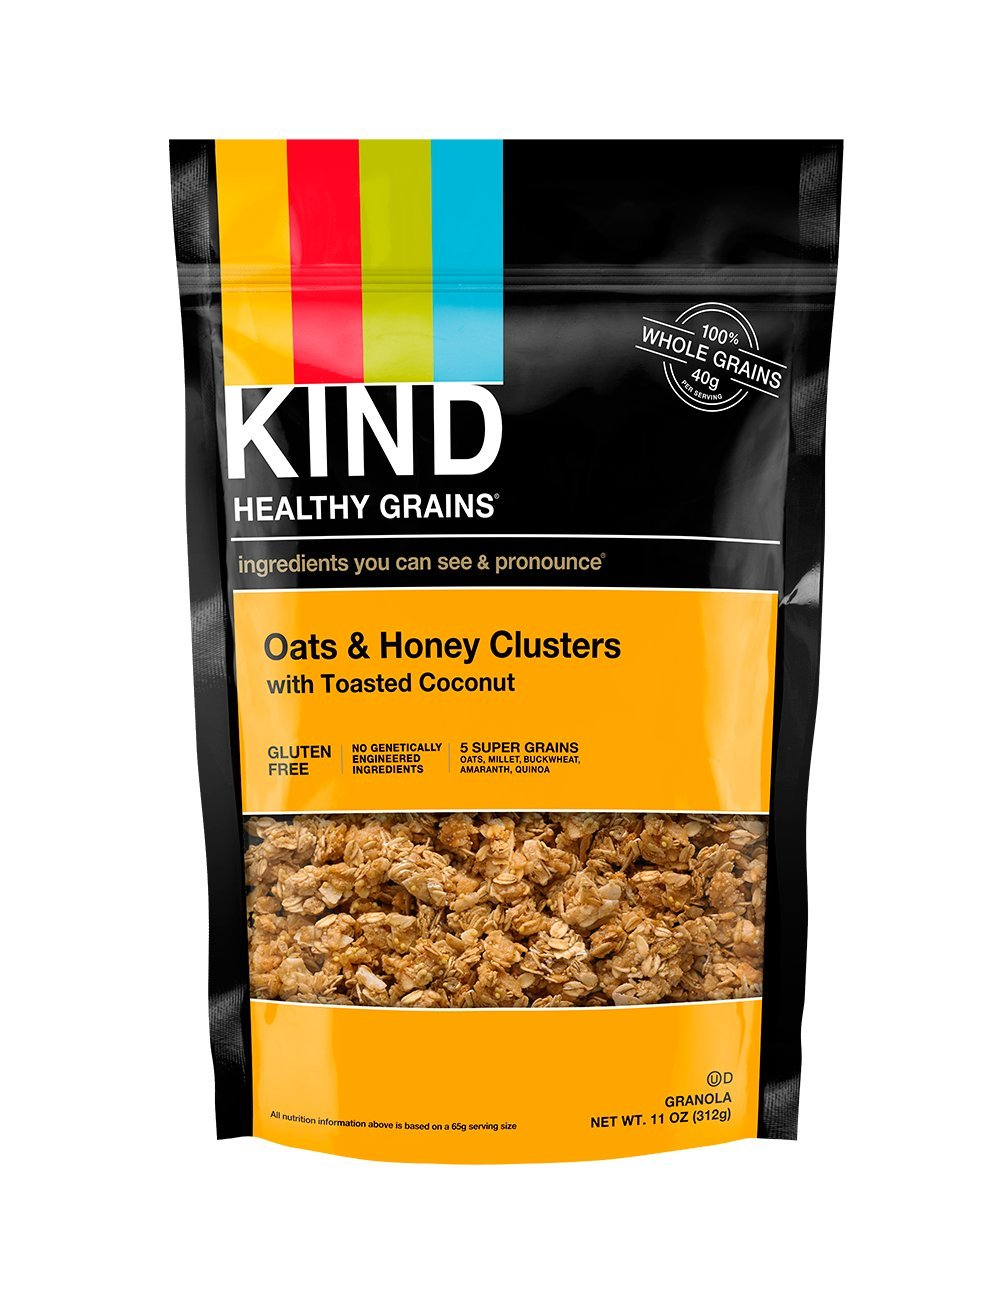 KIND Healthy Grains Clusters, Oats and Honey with Toasted Coconut Granola, Gluten Free, Non GMO, 11 Ounce Bags, 3 Count